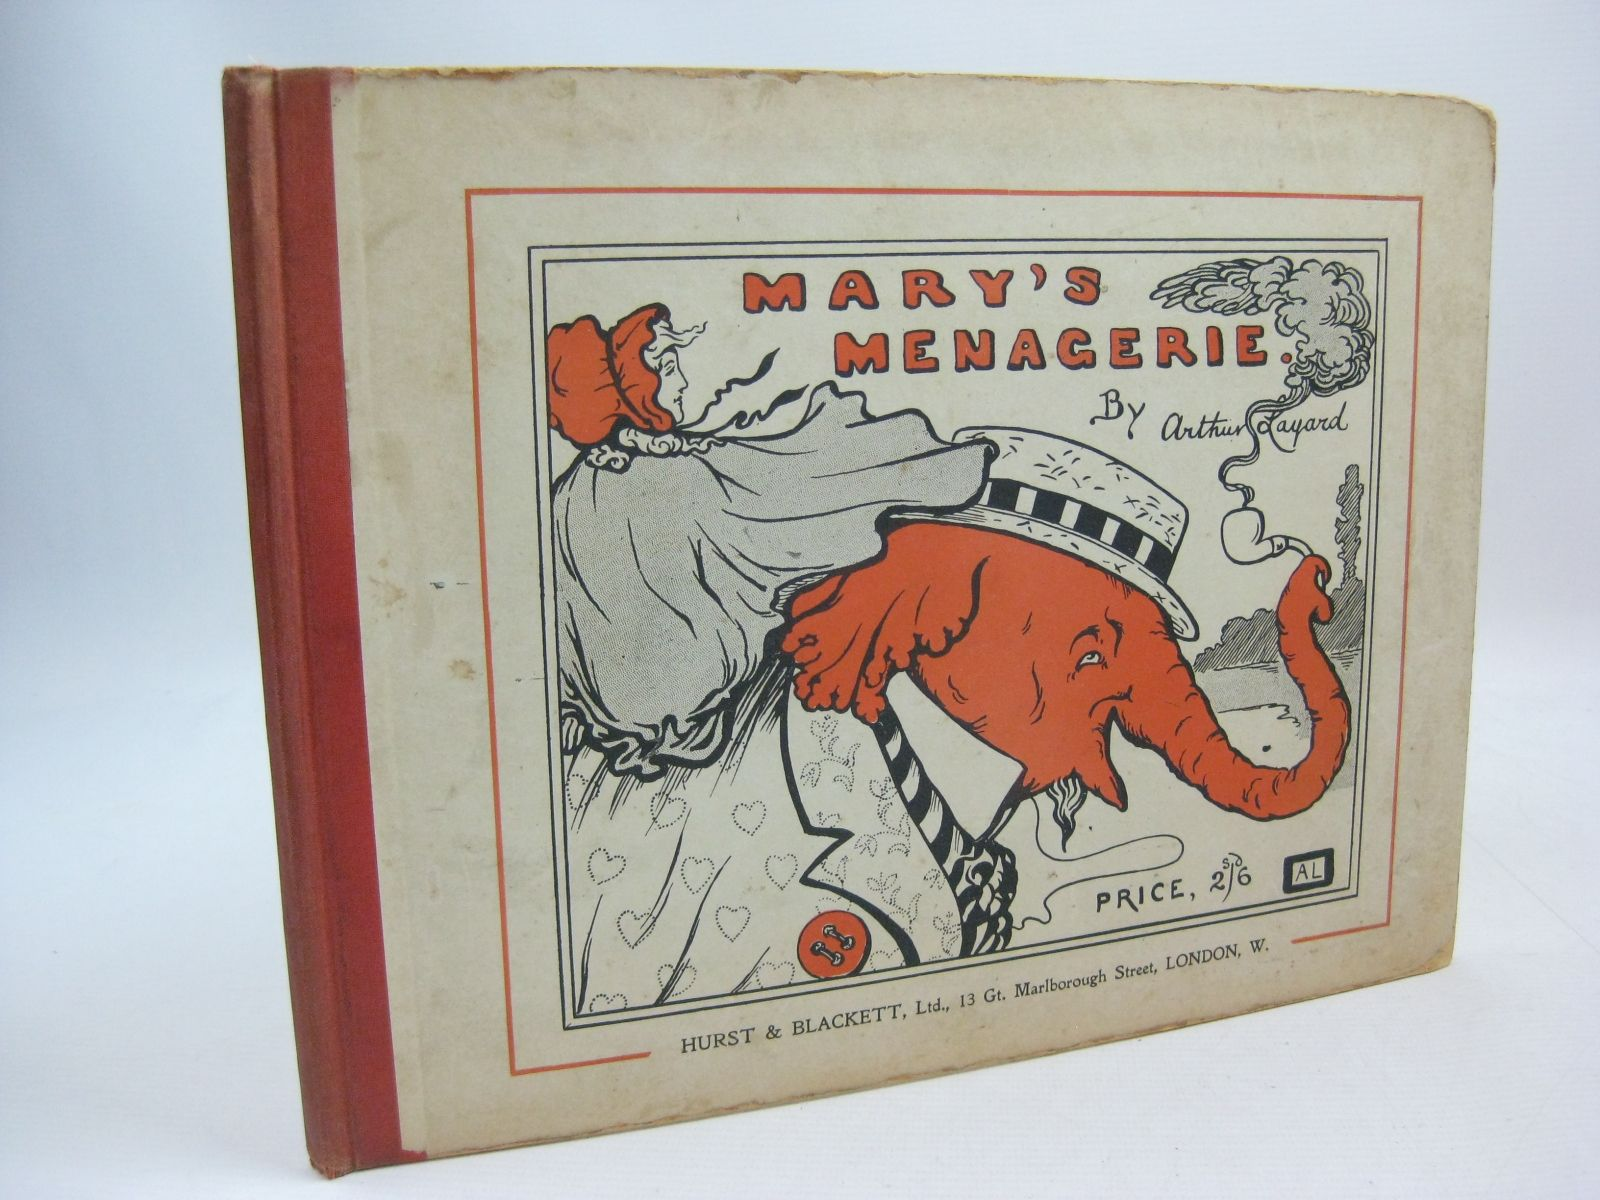 Photo of MARY'S MENAGERIE written by Layard, Arthur illustrated by Layard, Arthur published by Hurst & Blackett Ltd. (STOCK CODE: 1315484)  for sale by Stella & Rose's Books